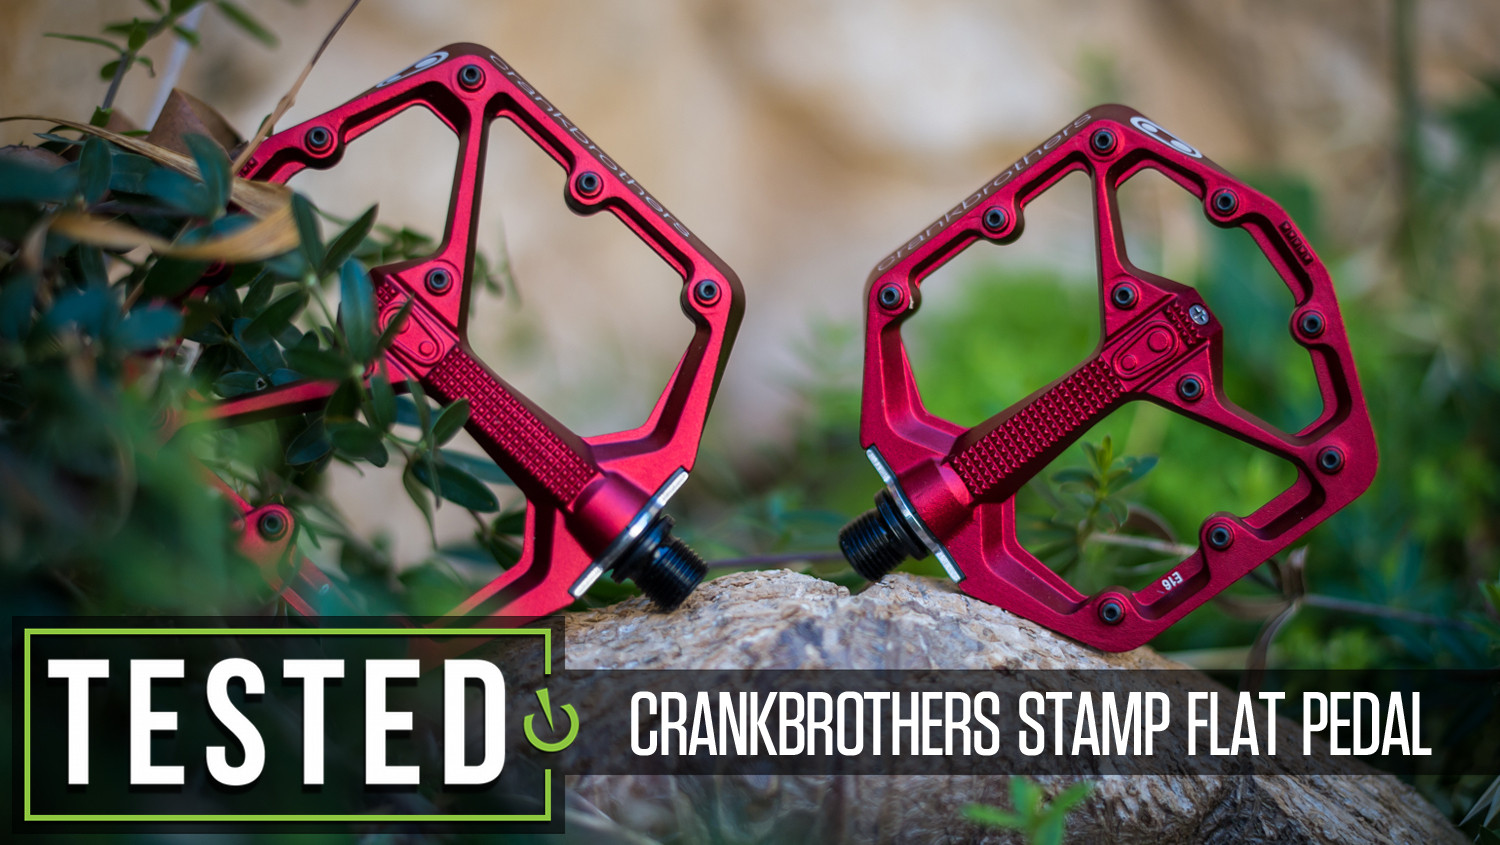 Crankbrothers Stamp 7 Flat Pedal